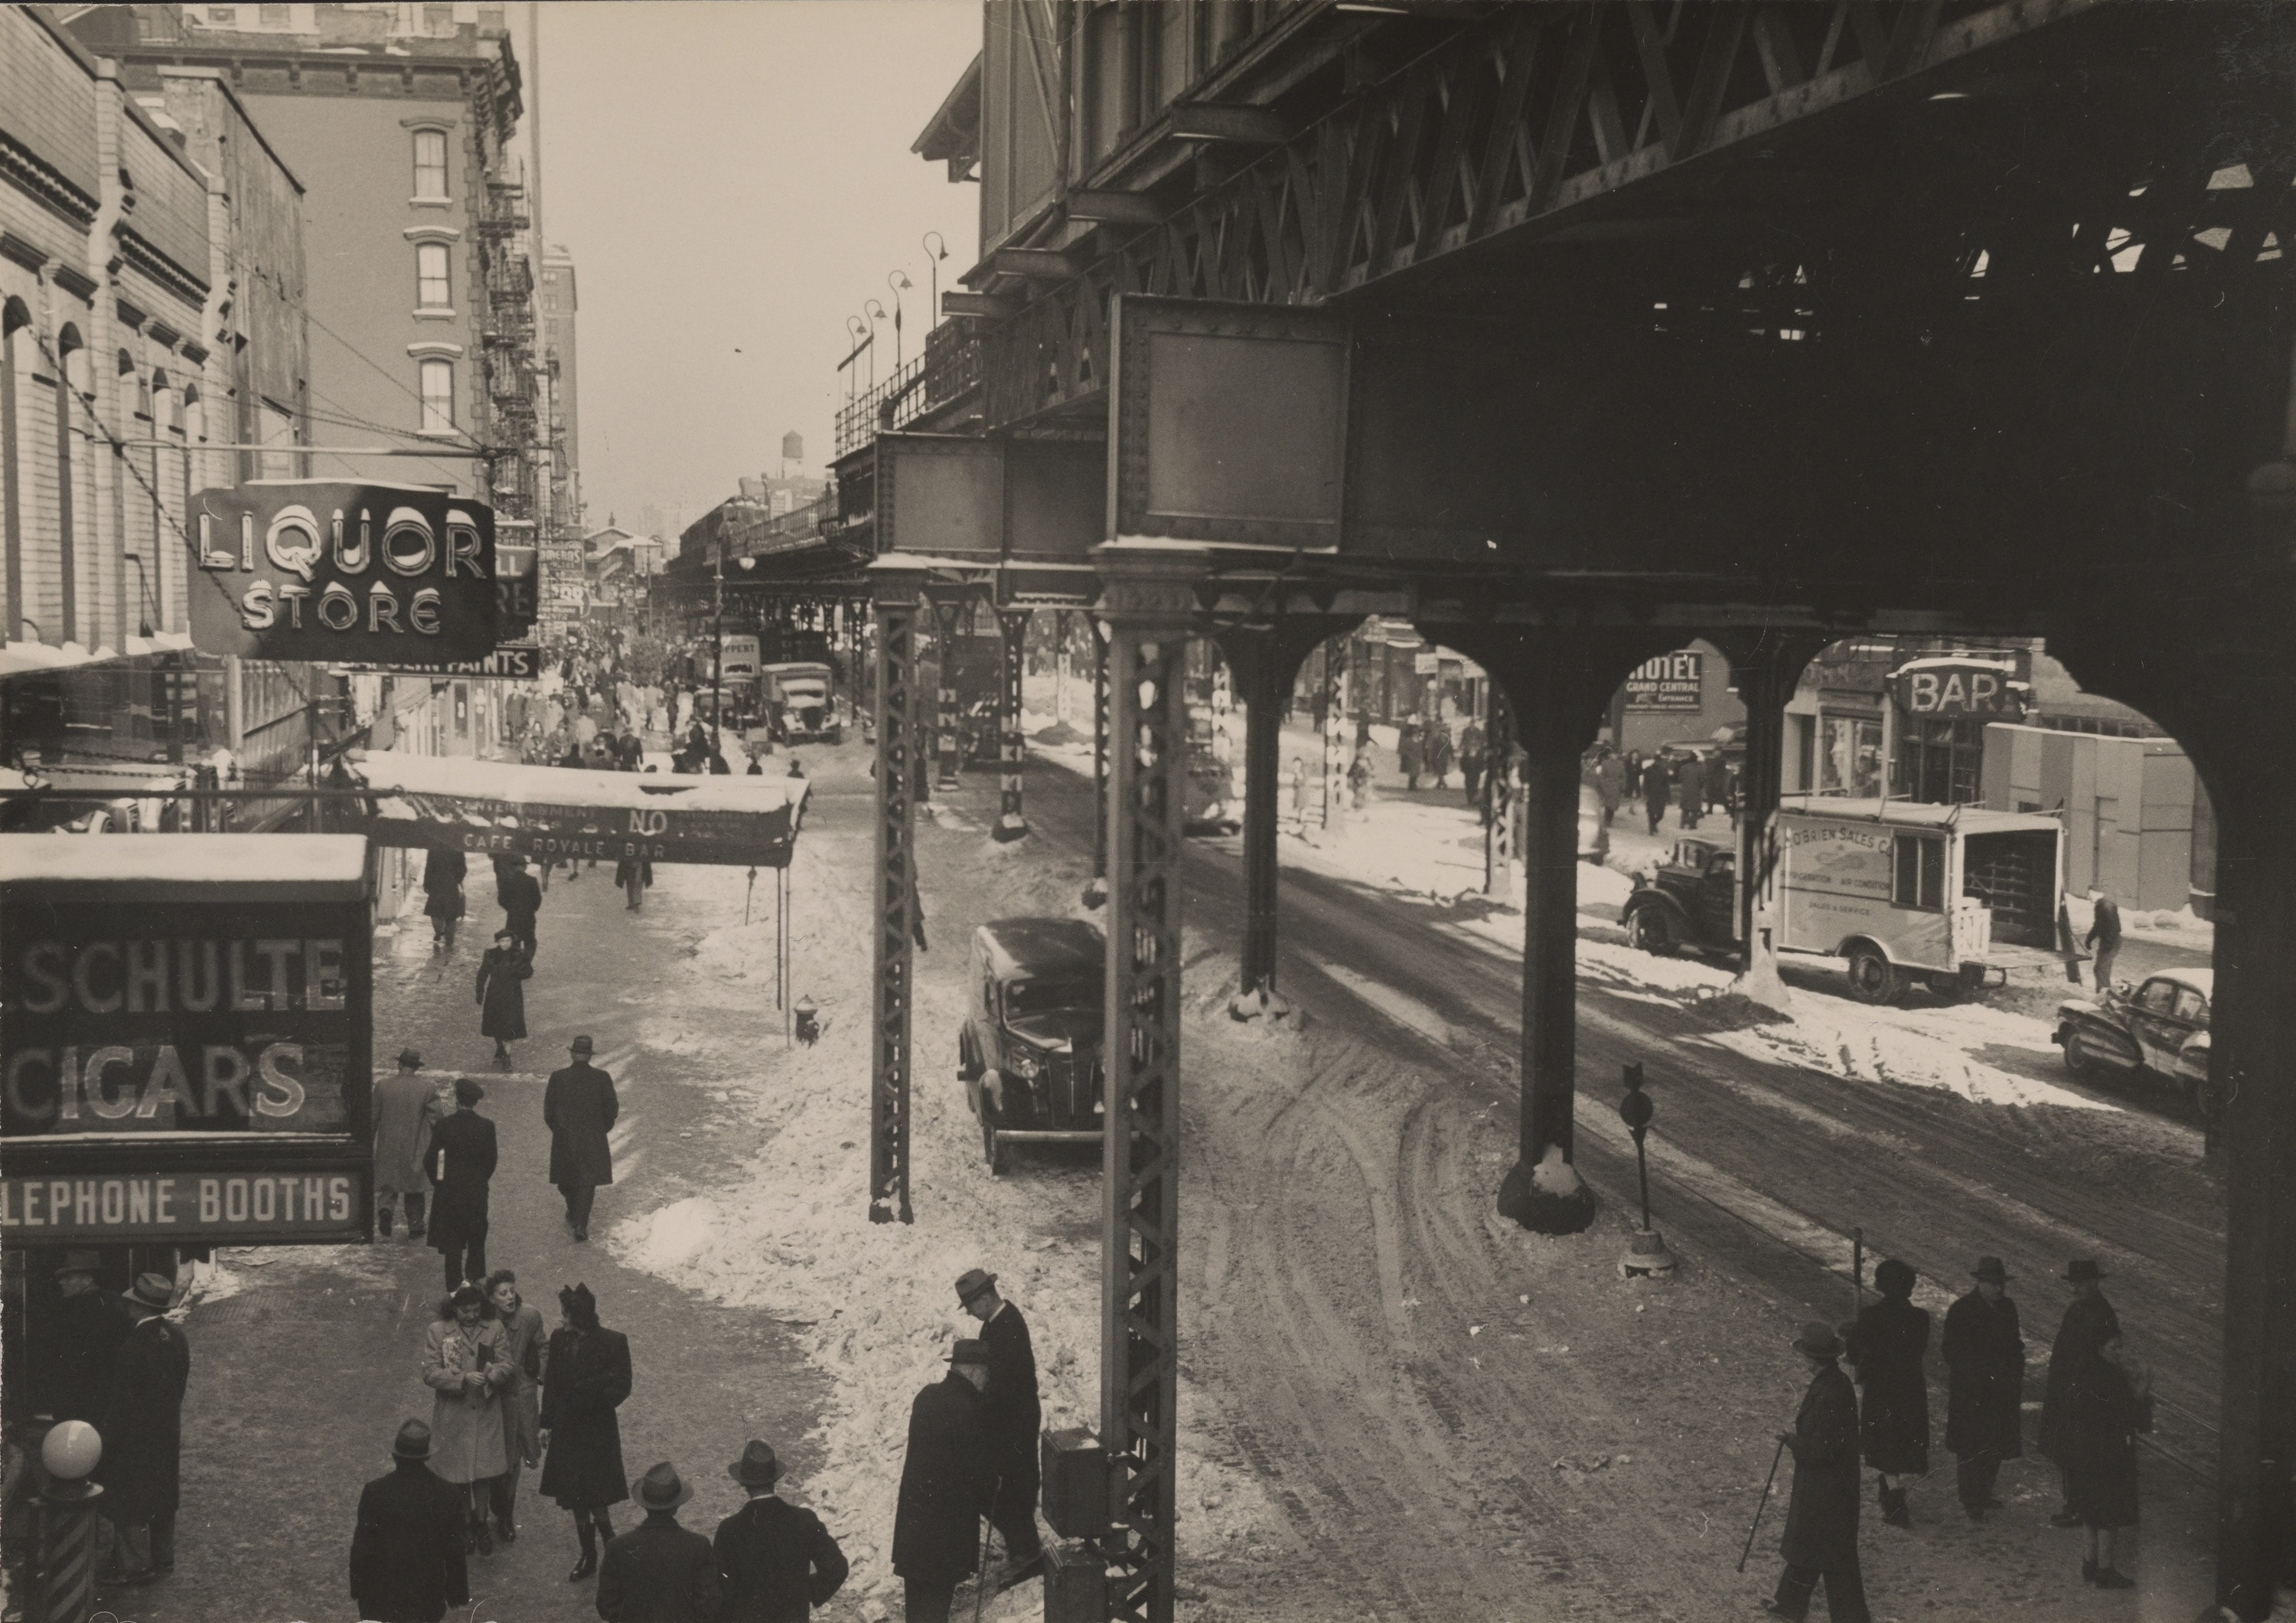 3rd Avenue from 42nd Street El Station, New York, 1945